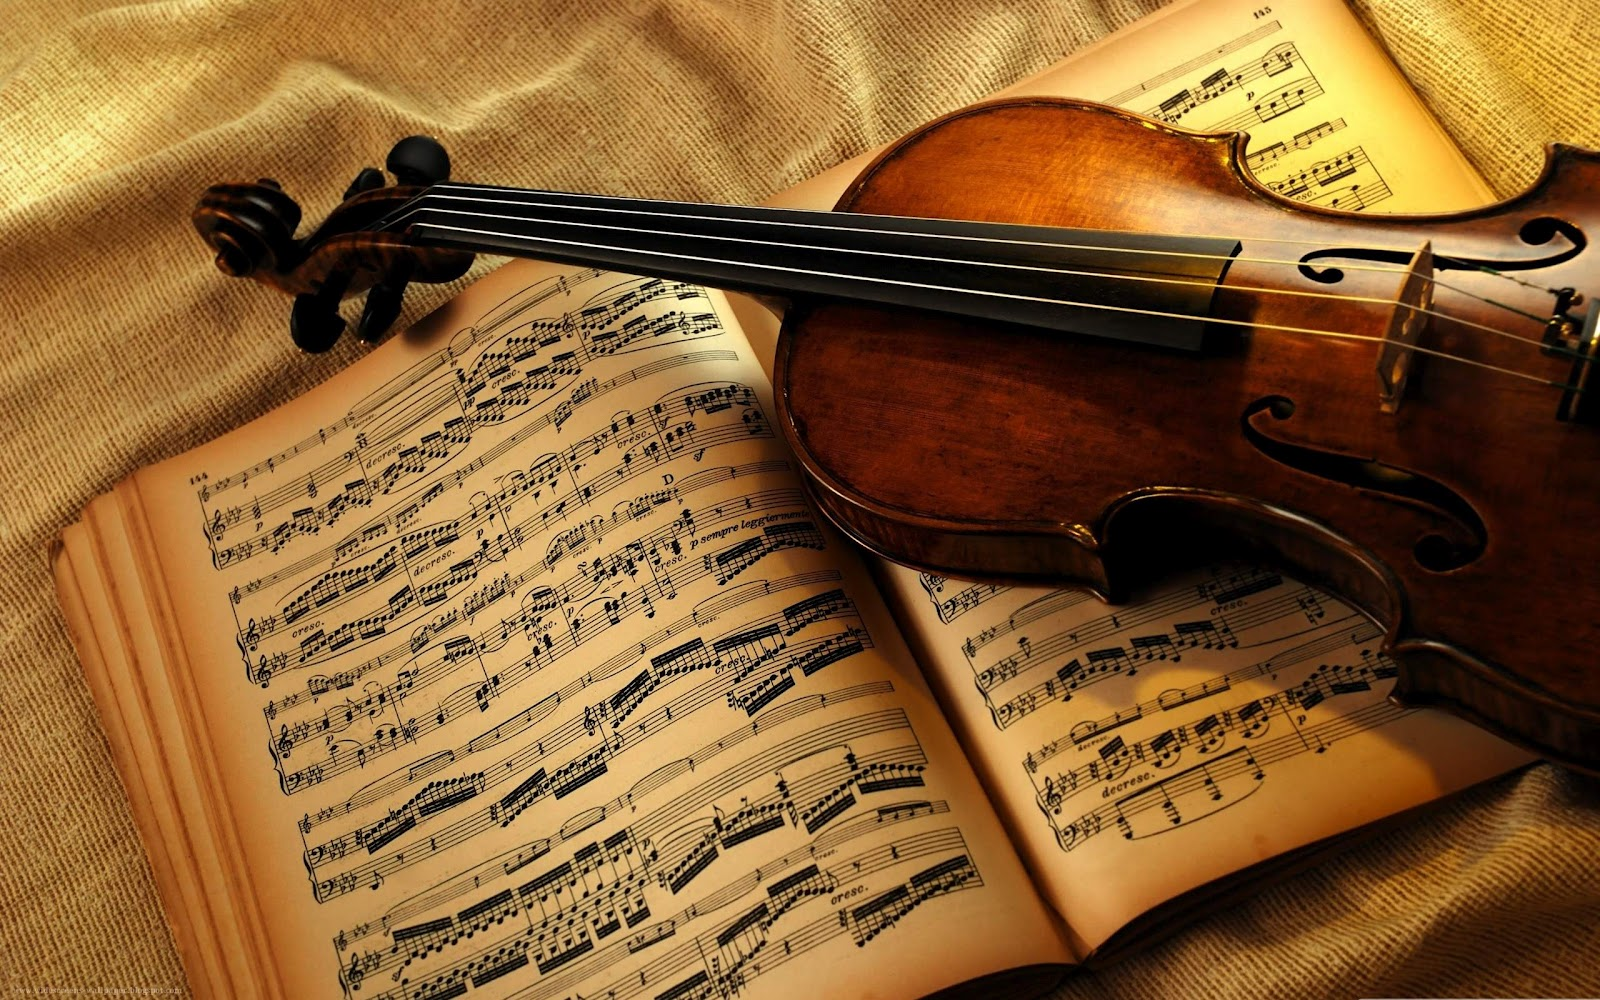 Top violin - Music Violins Collection